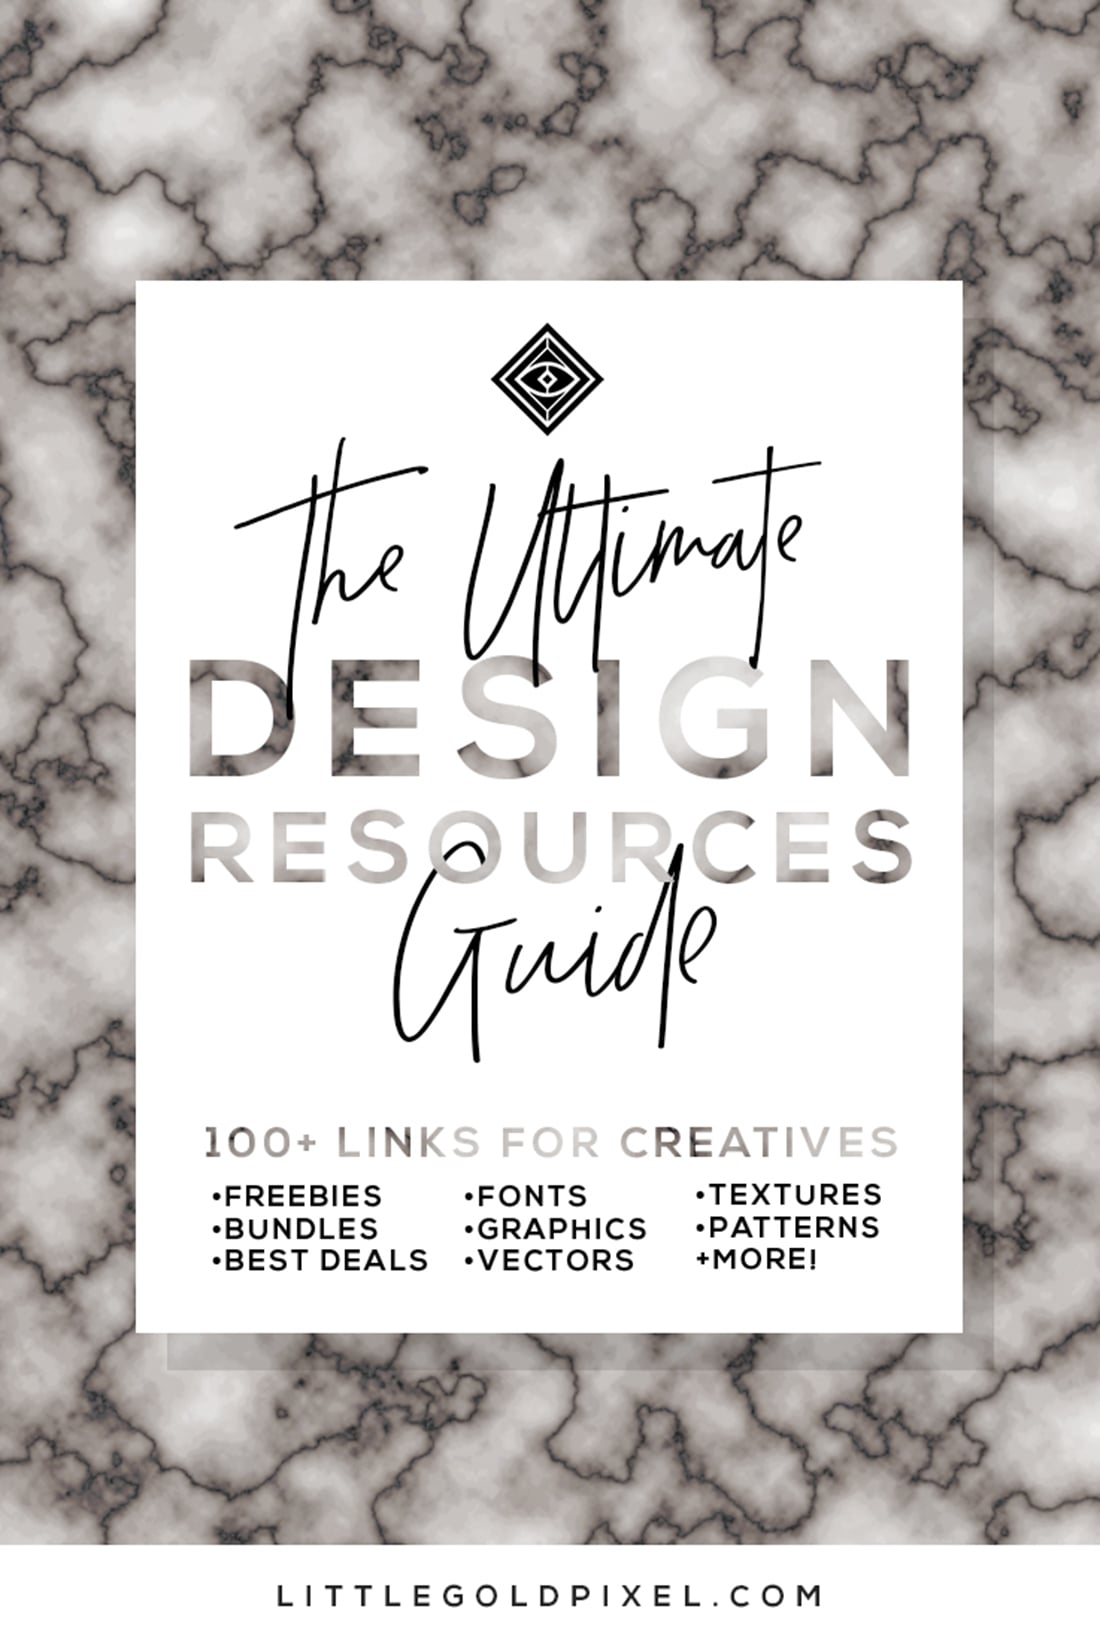 Ultimate Design Resources Guide • 100+ Links for Digital Creatives who Photoshop, Illustrator • Freebies, Bundles & Deals on Fonts, Graphics, Vectors, Textures, Patterns & More! • Click through & bookmark today!